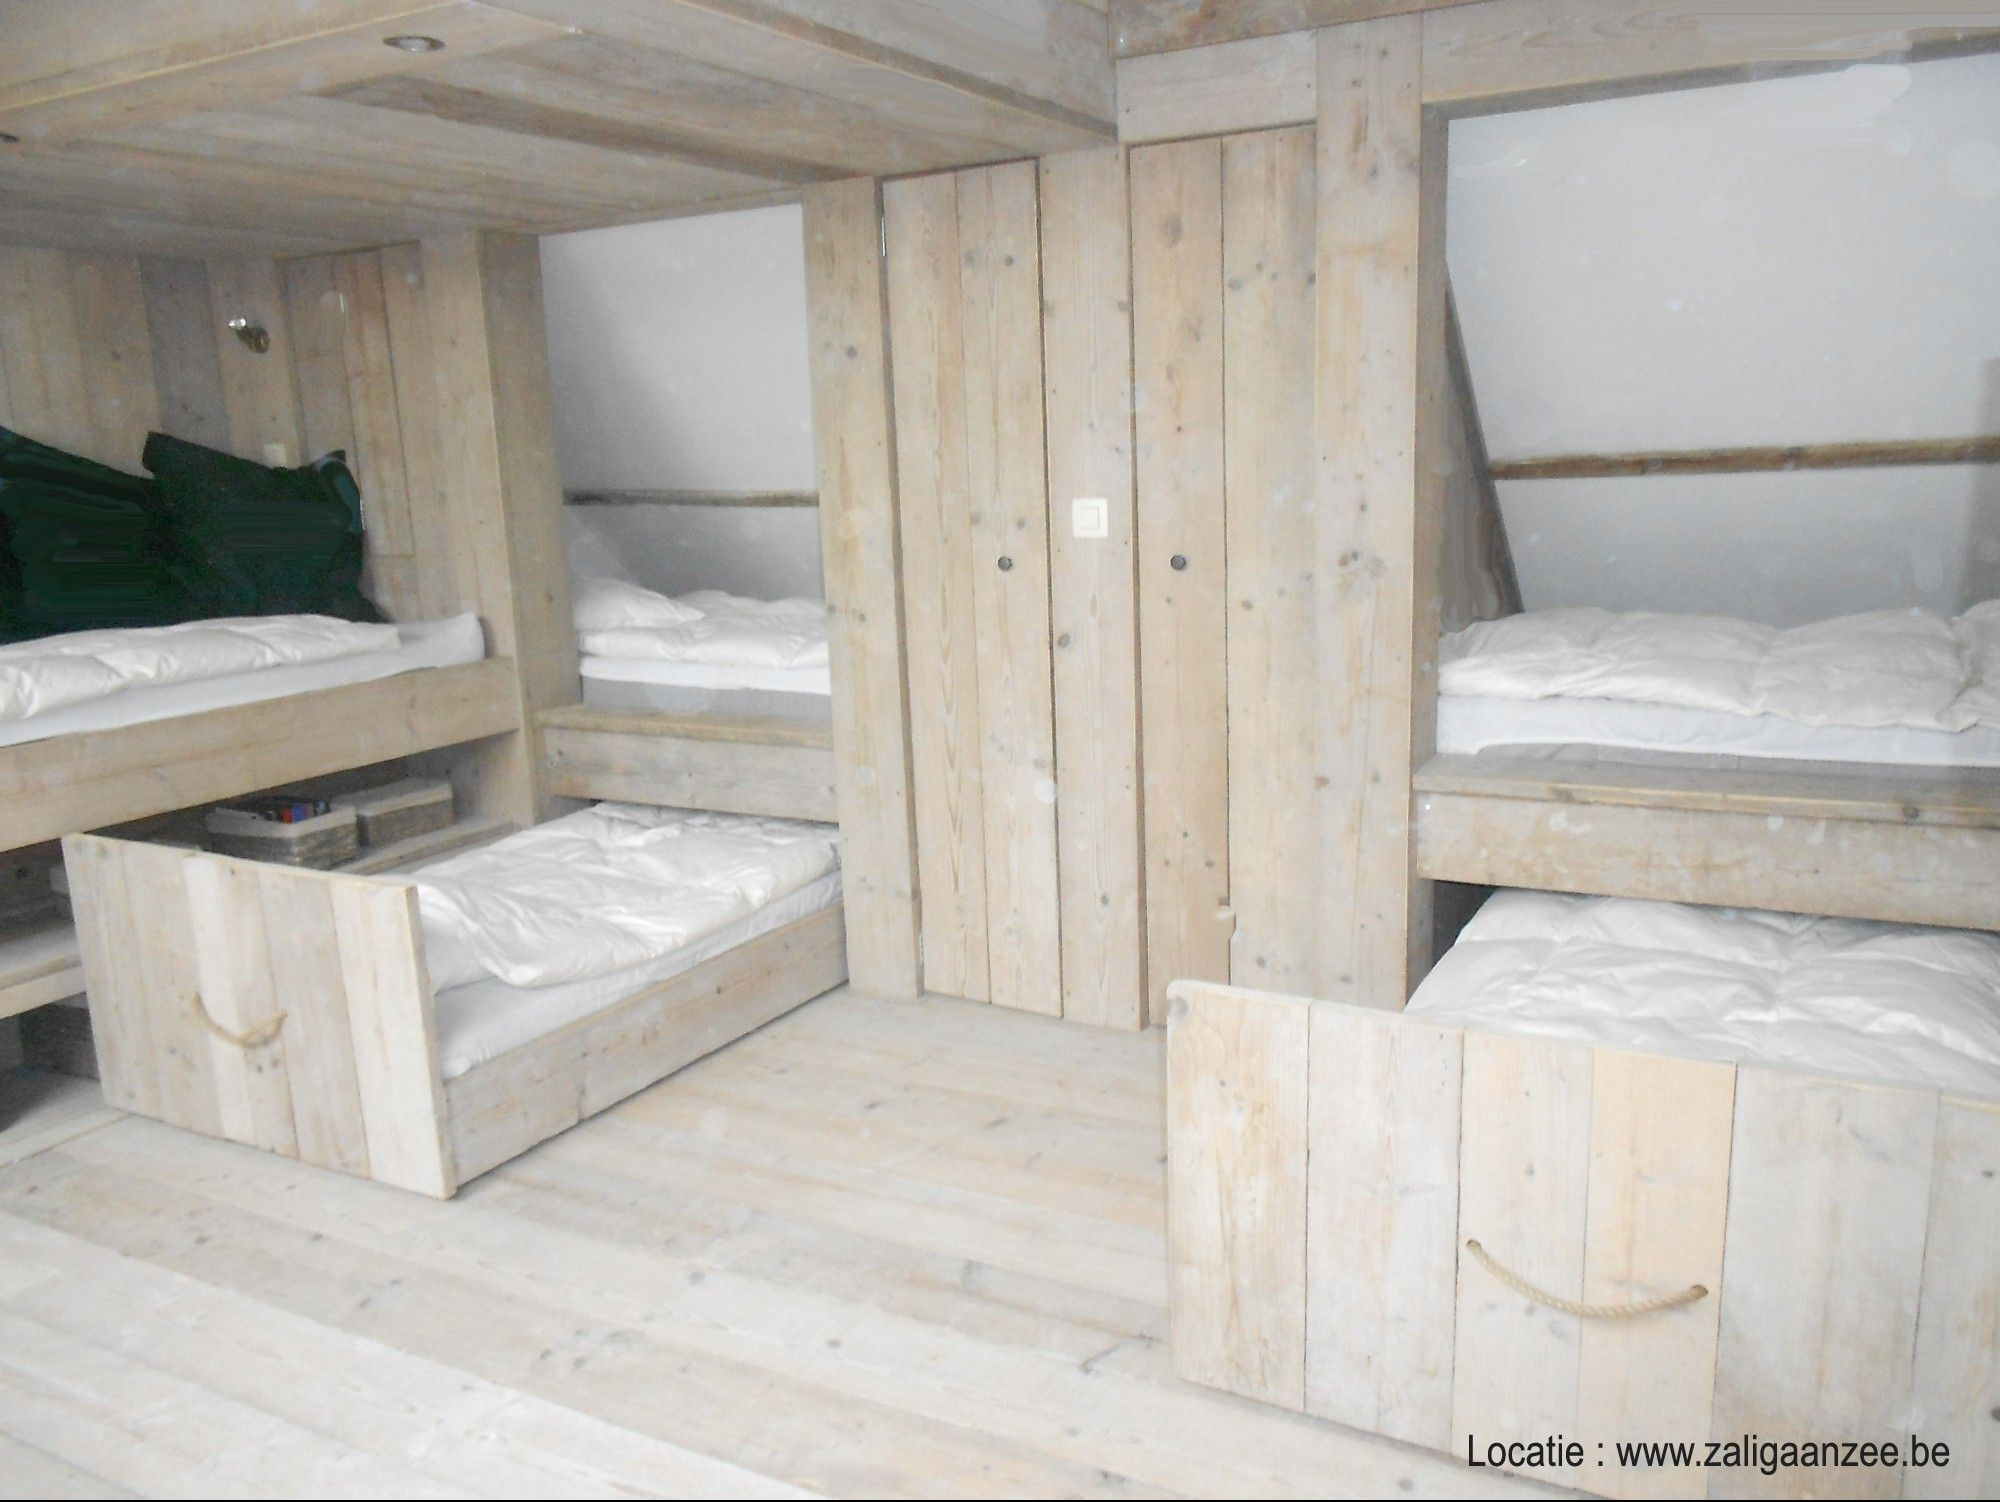 Attic Bunk Room With Pull Out Beds